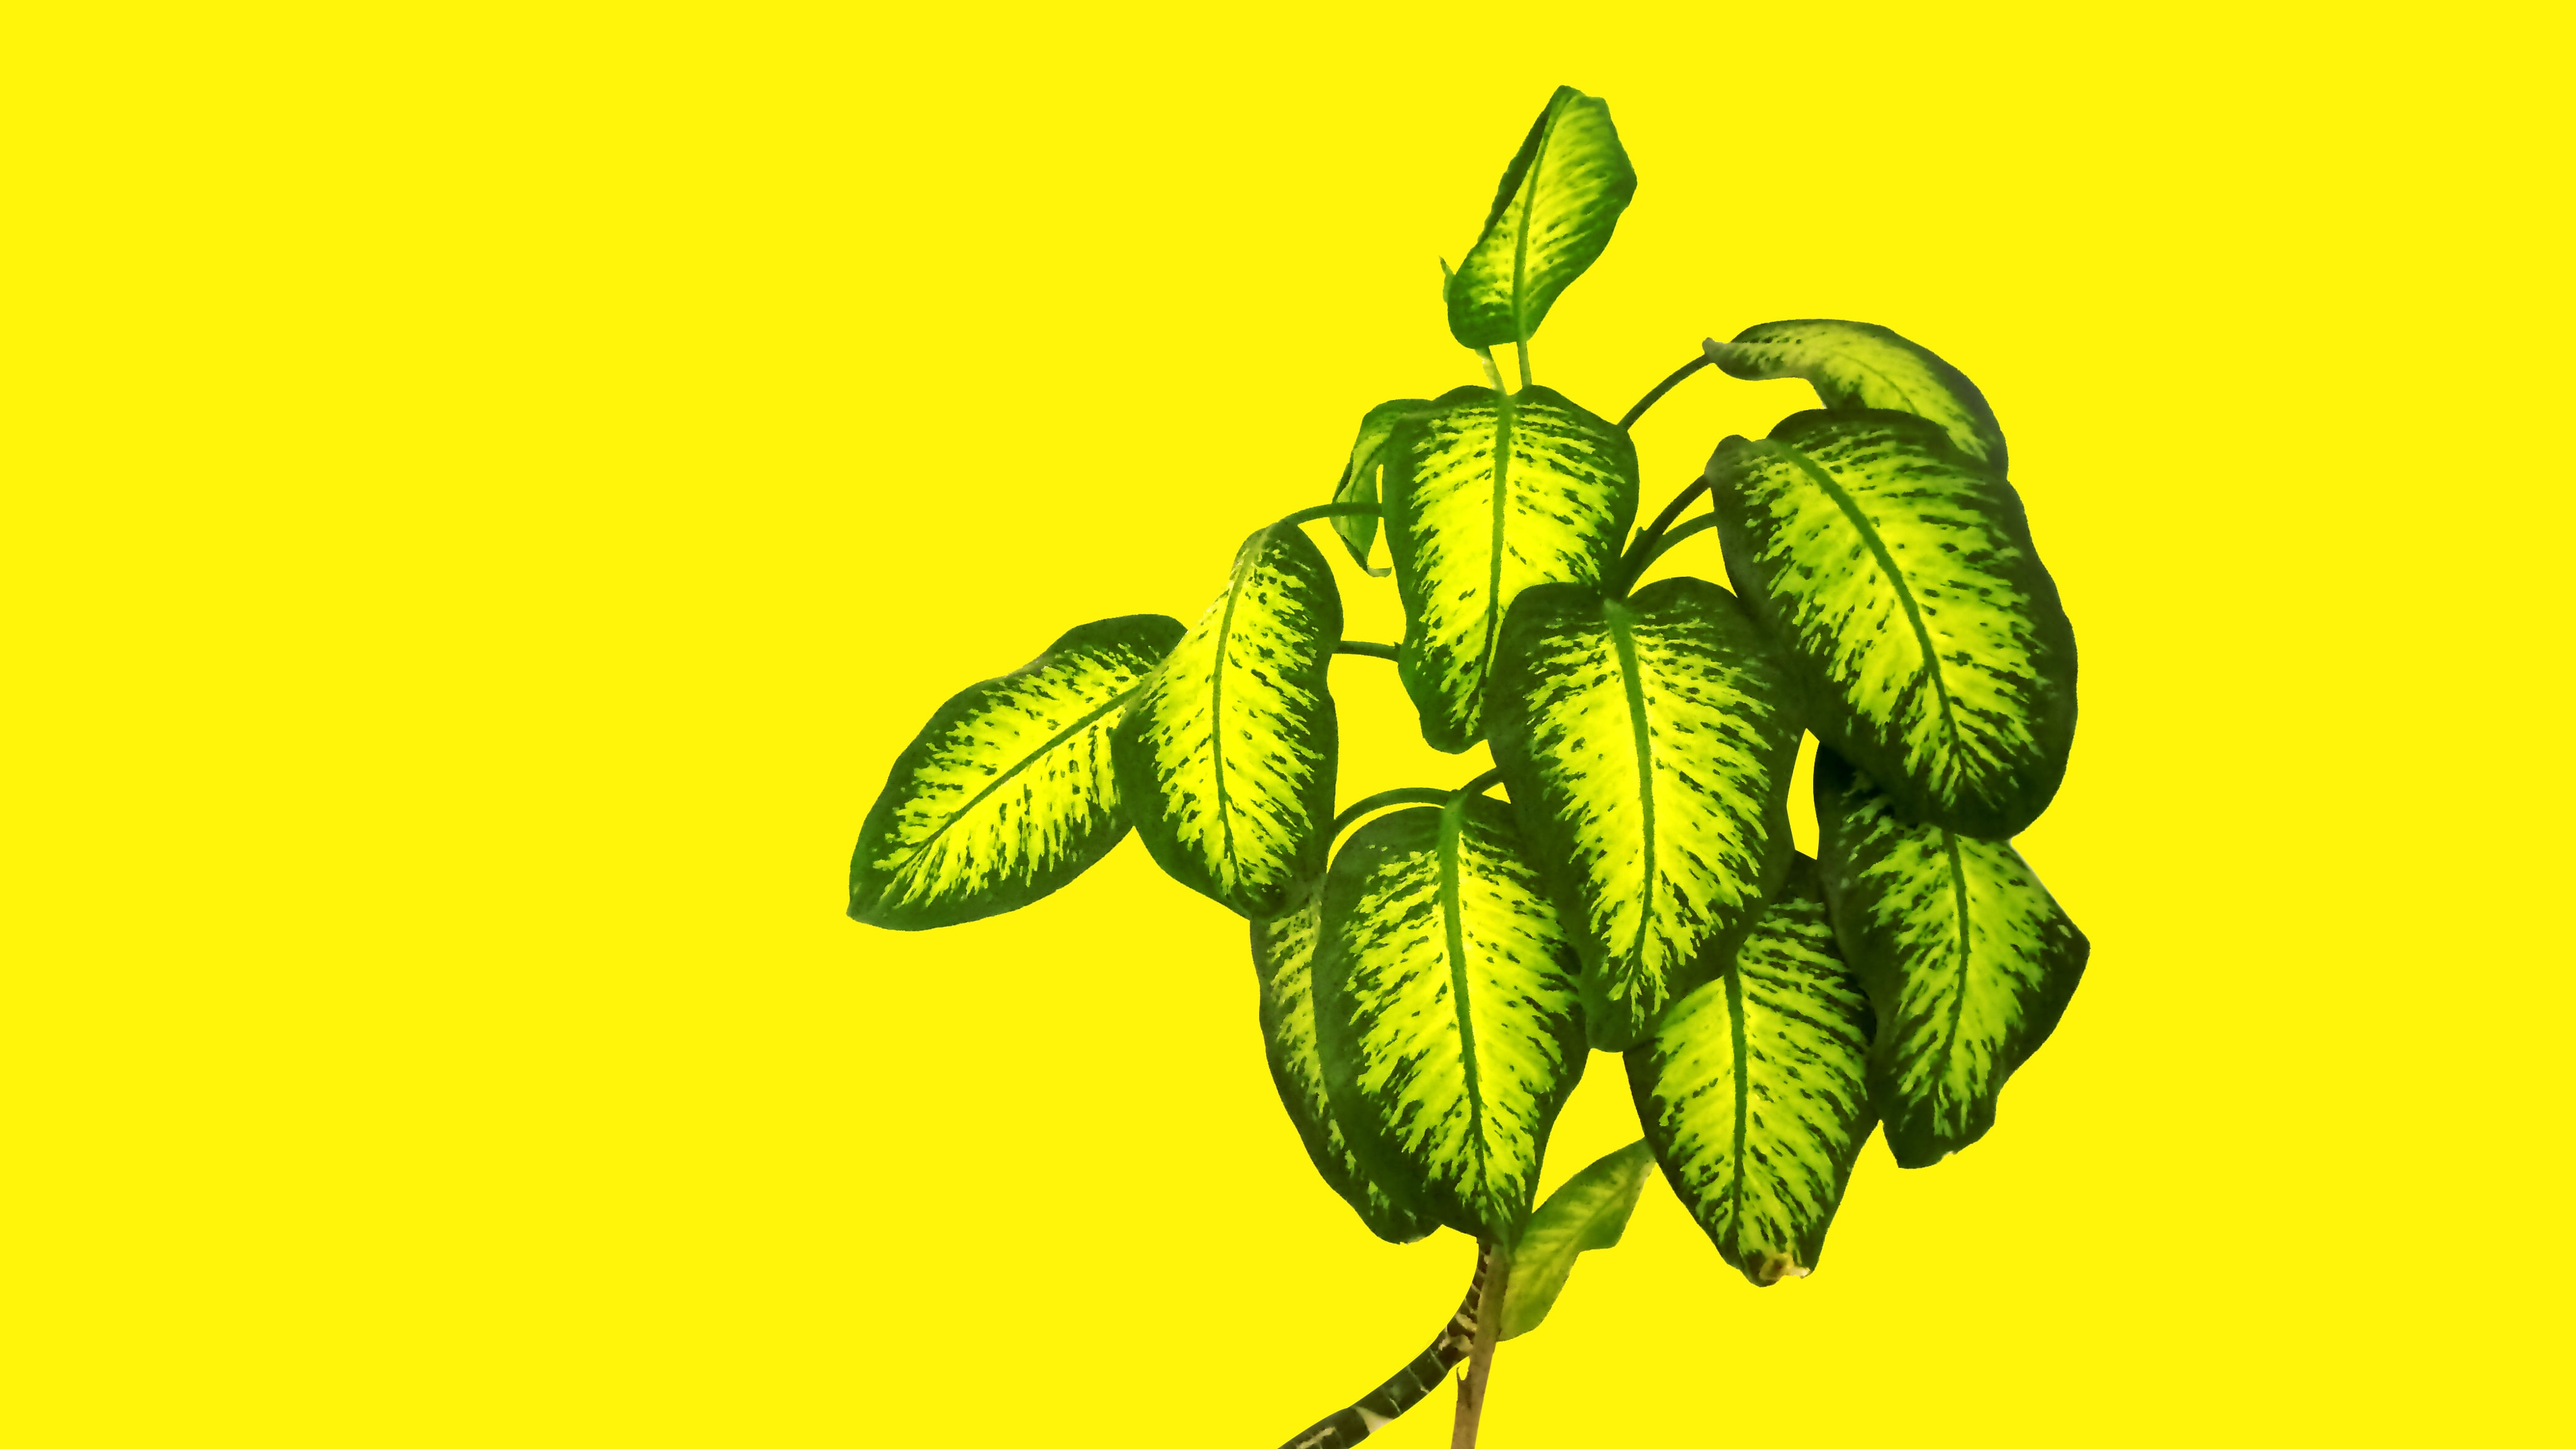 dumb cane plant on yellow background